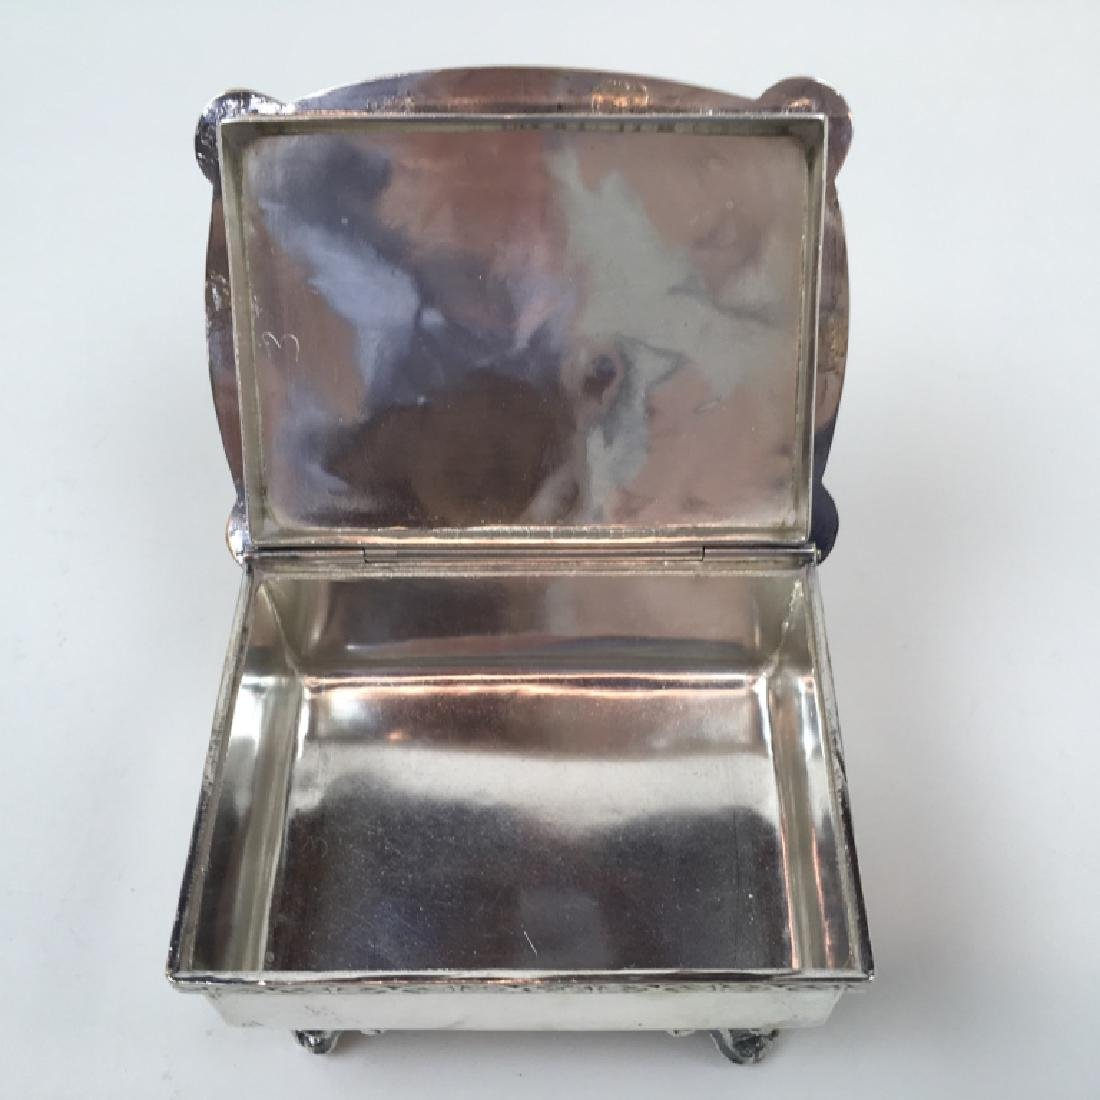 STERLING ART DECO DRESSER BOX & JEWELRY CASKET - 17